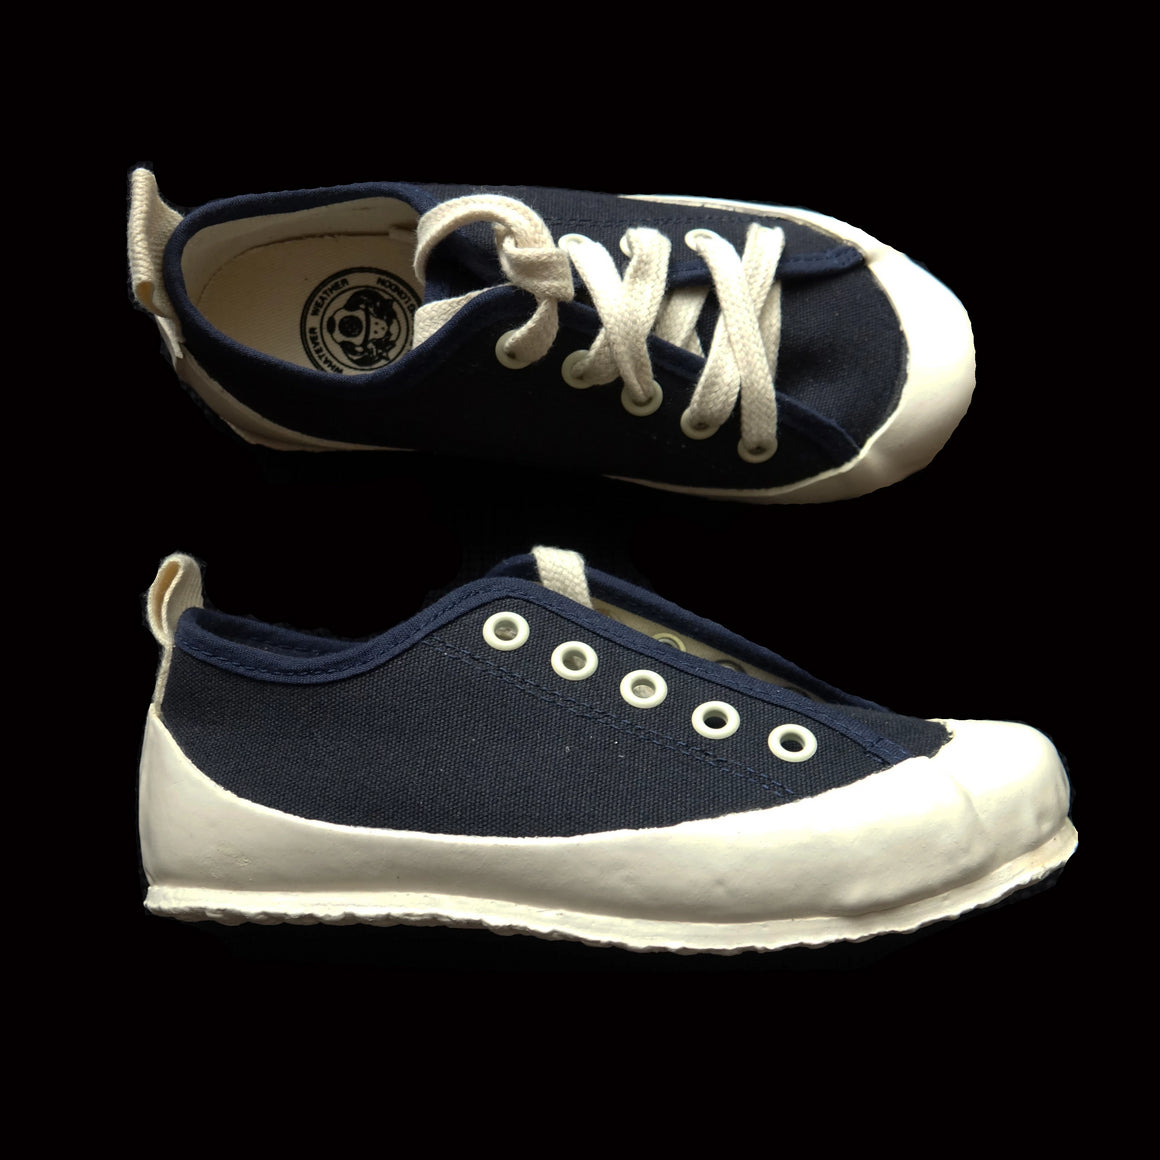 KIDS MARINE DECK SHOE - NAVY/ECRU